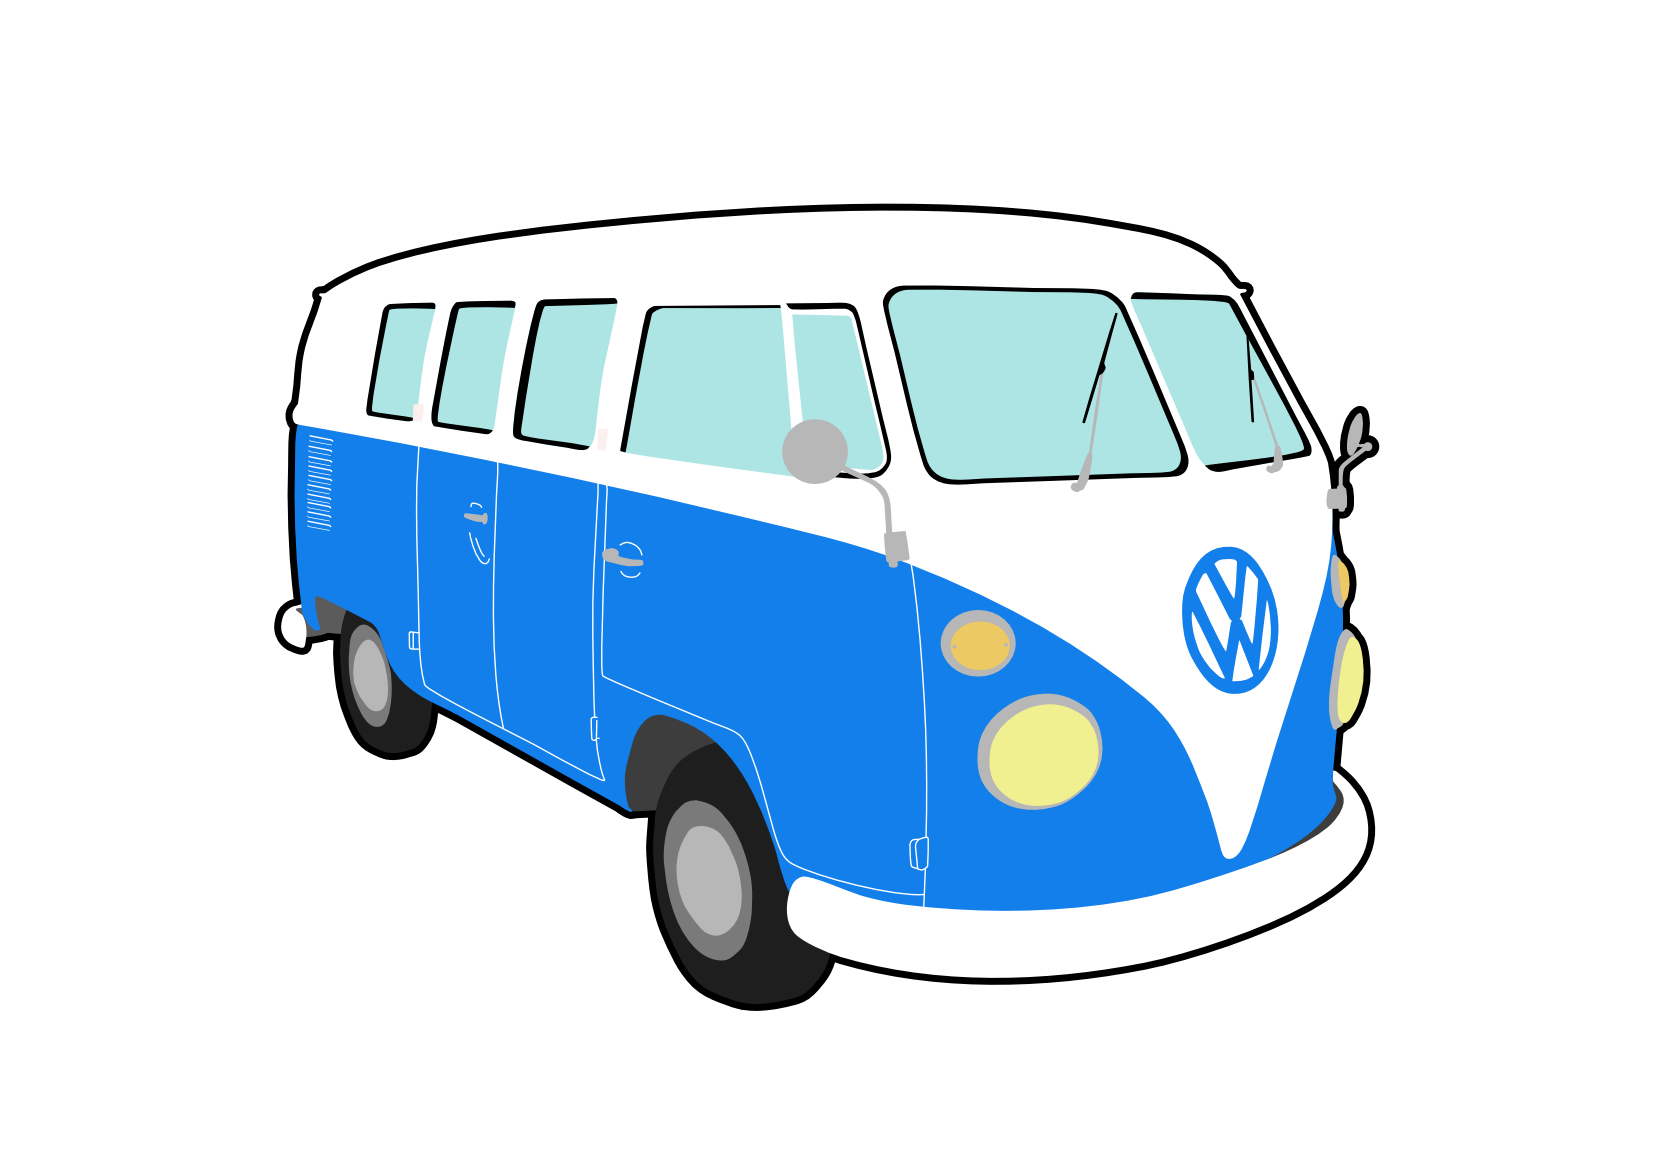 Minivan clipart mini bus. Volkswagen cartoon bing images